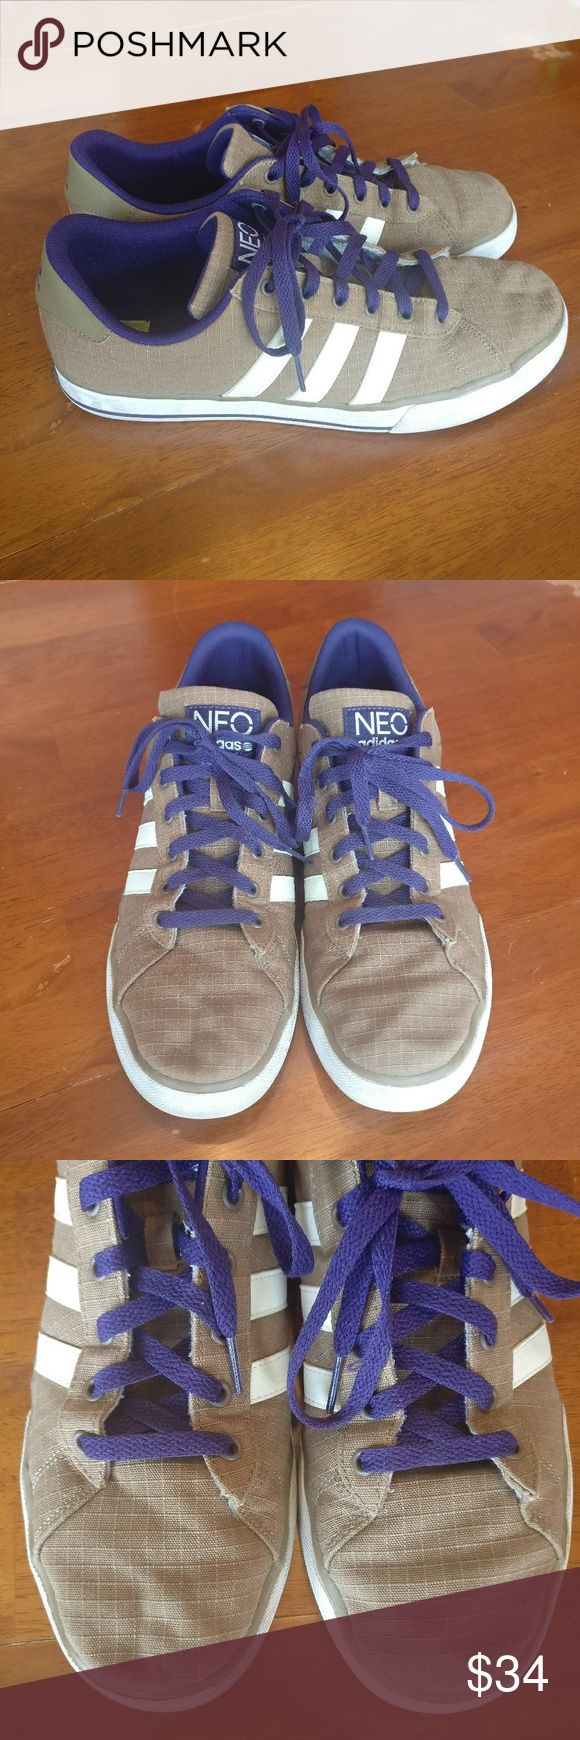 Adidas NEO OrthoLite Comfort Foam Sneakers Adidas  NEO OrthoLite Comfort Foam Insole Sneakers  These are like walking on clouds!  Tan with purple and white.  Gently used condition, there are a few marks/ imperfections. Soles in great condition, plenty of life left!  Men's size 11 adidas Shoes Sneakers